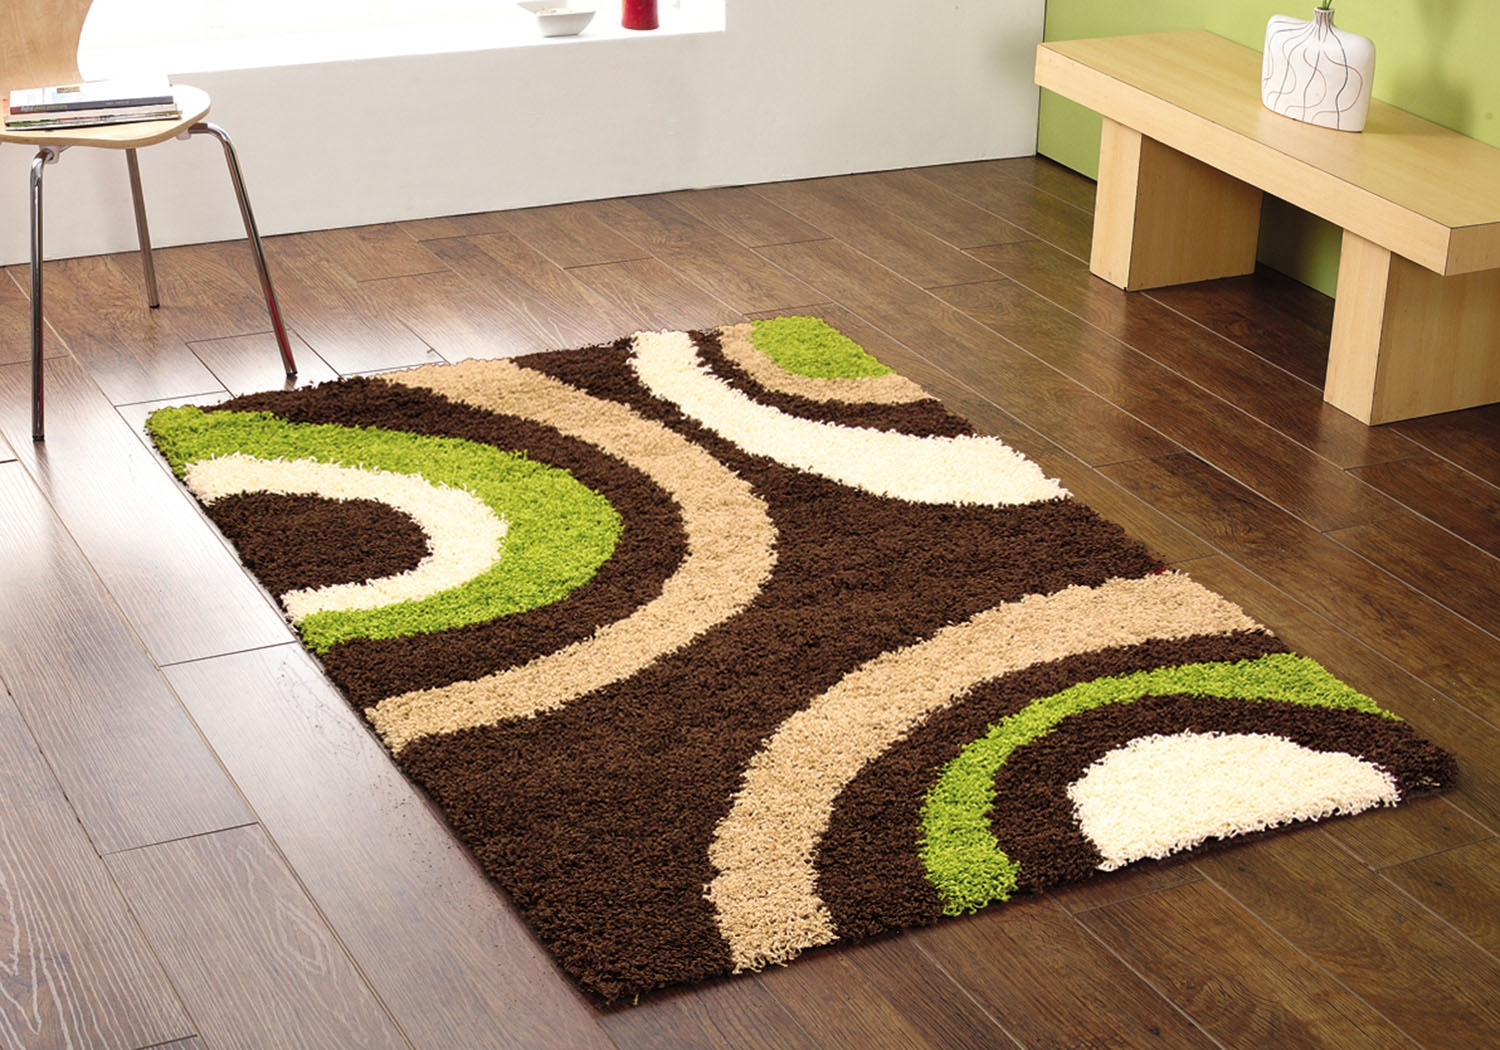 Lime Green And Brown Rug Roselawnlutheran With Regard To Green And Brown Rugs (Image 11 of 15)